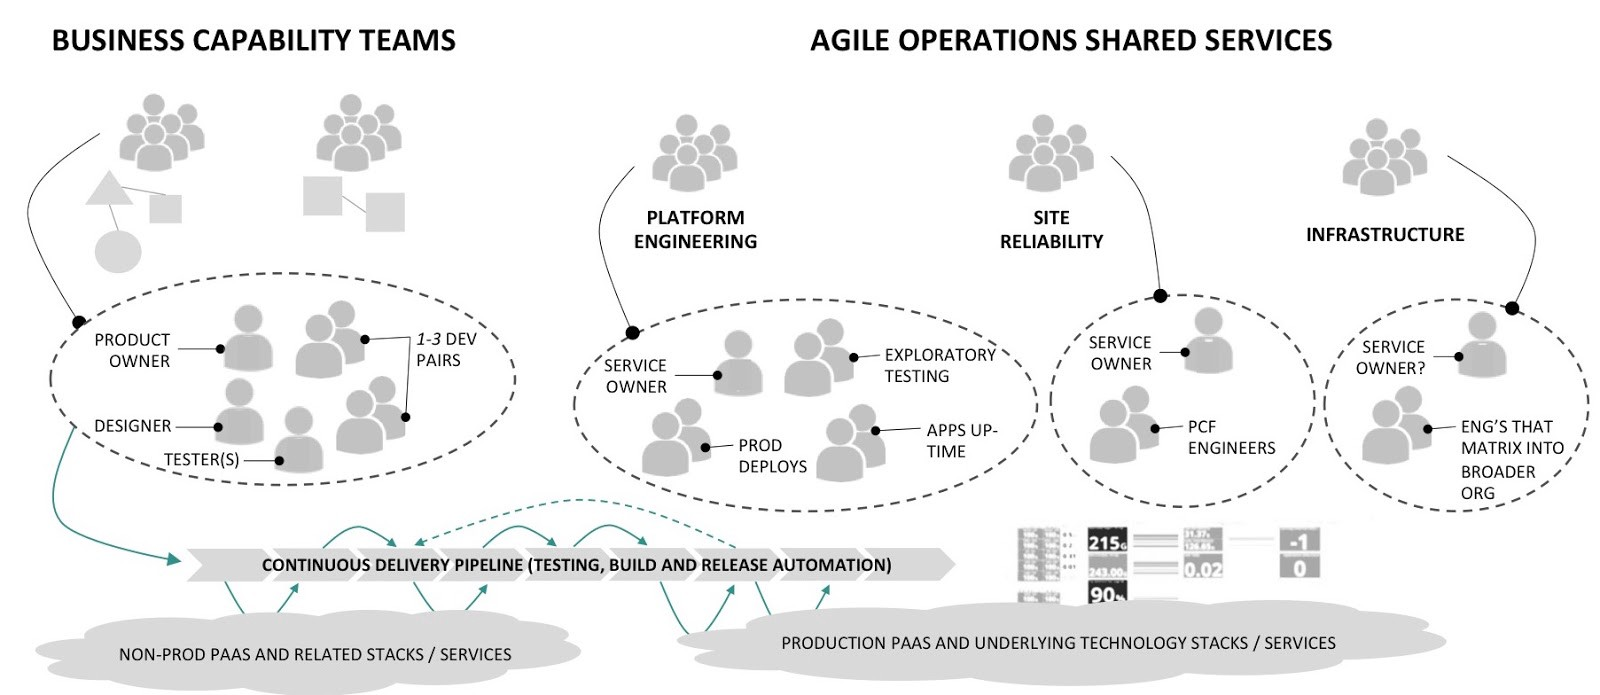 Roles And Responsibilities For Devops Agile Teams Template In Addition Data Structure Diagram On Line These Two Clusters Map To An Organizational Layering We See Cloud Native Organizations While Not Depicted The